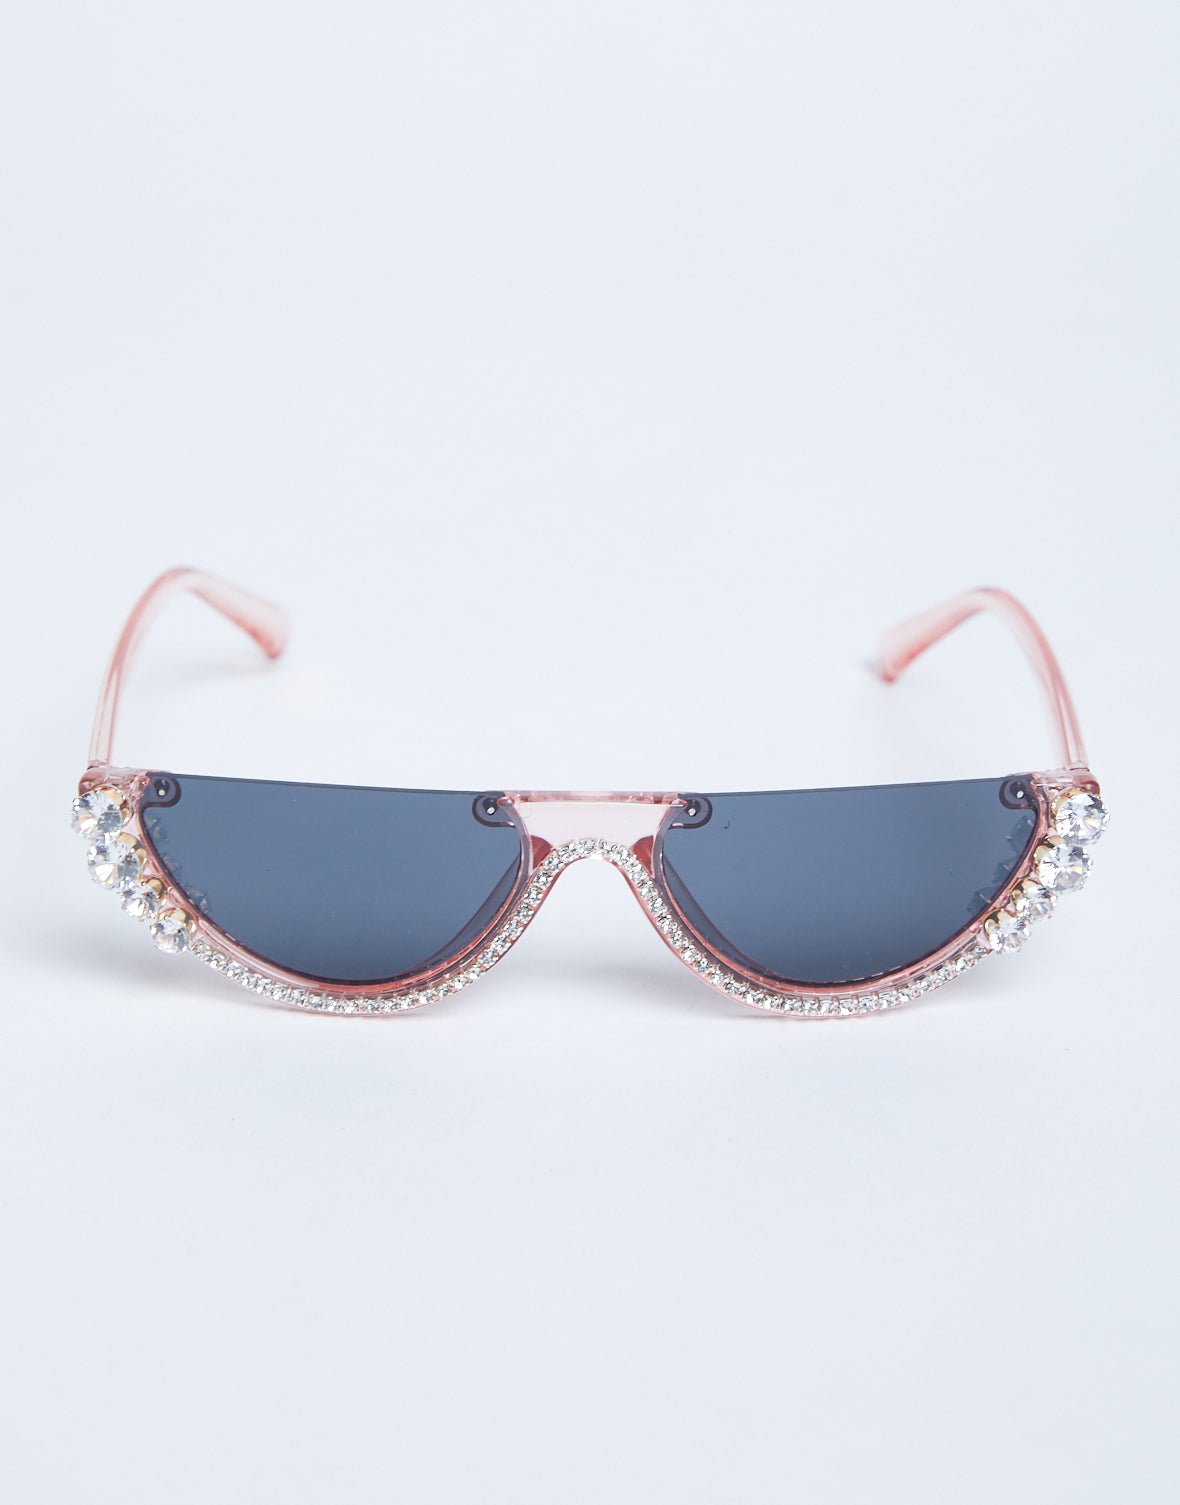 Throwing Shade Crystal Sunnies